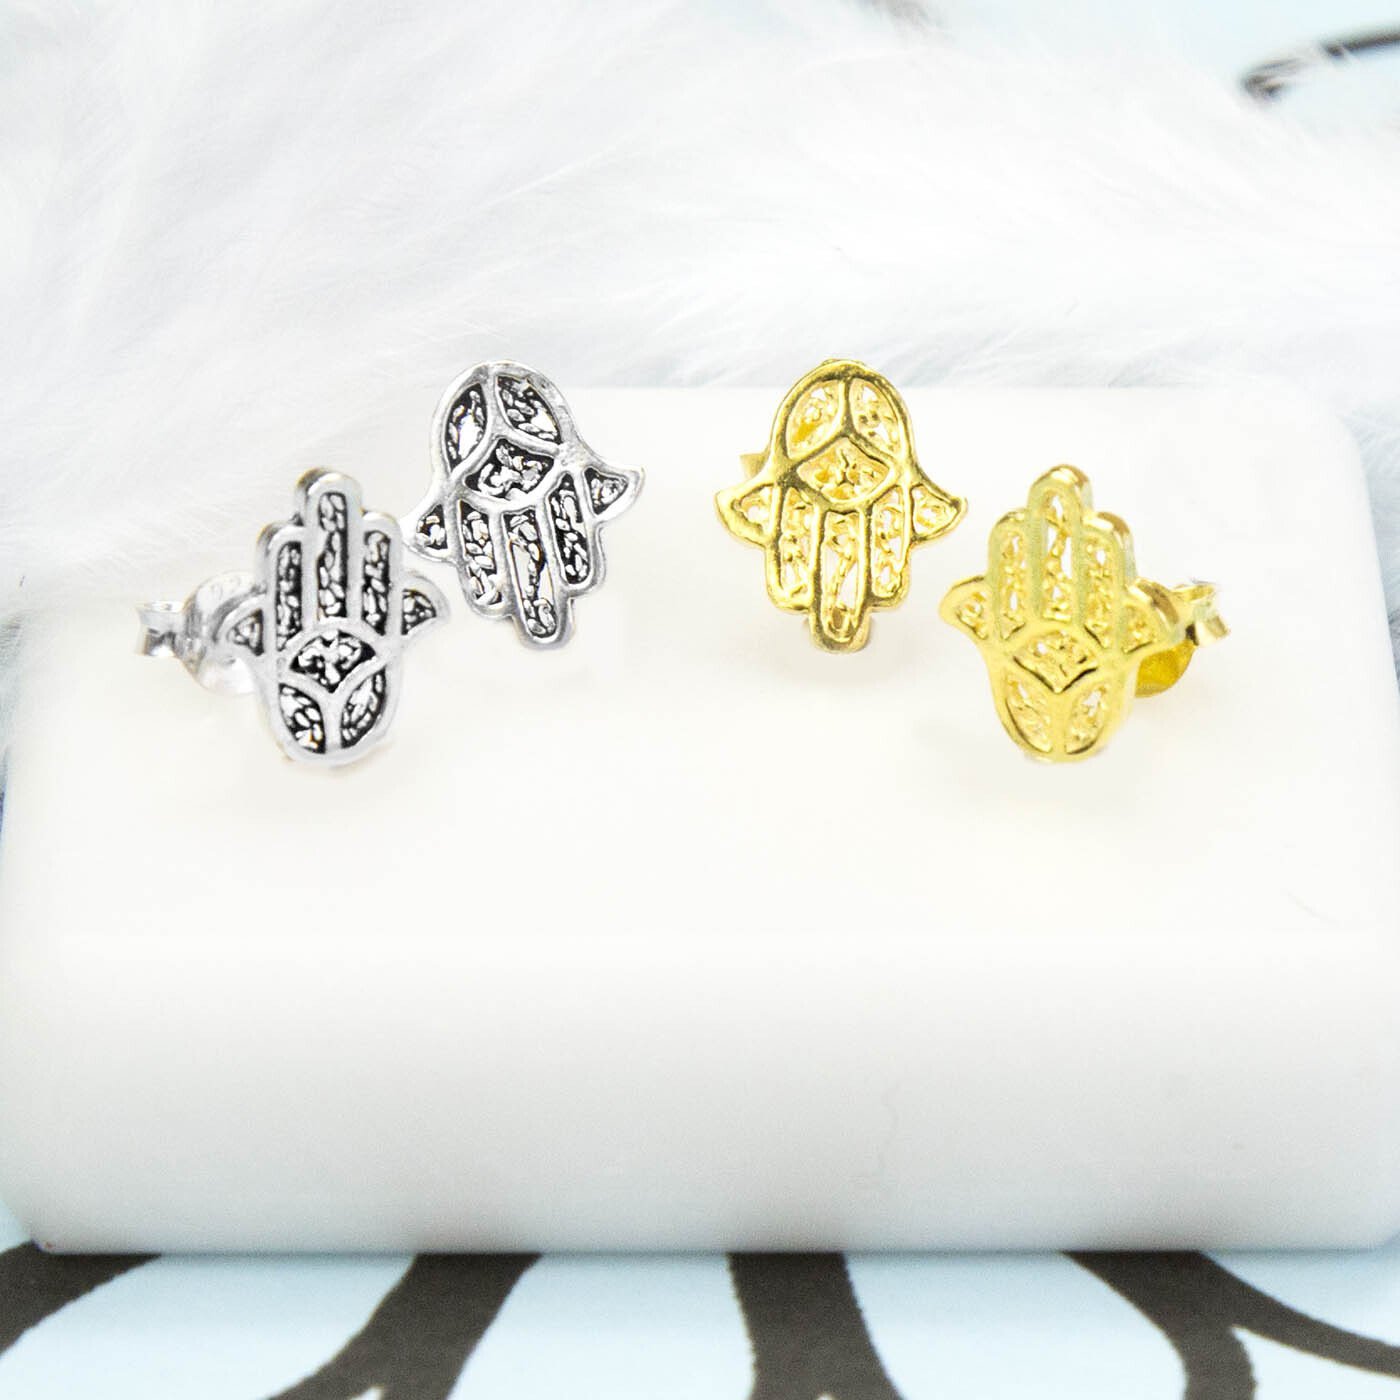 Pair of Silver Hamsa Hand Stud next to a Pair of Gold Hamsa Hand Studs on white tile background and blue and black pattern paper